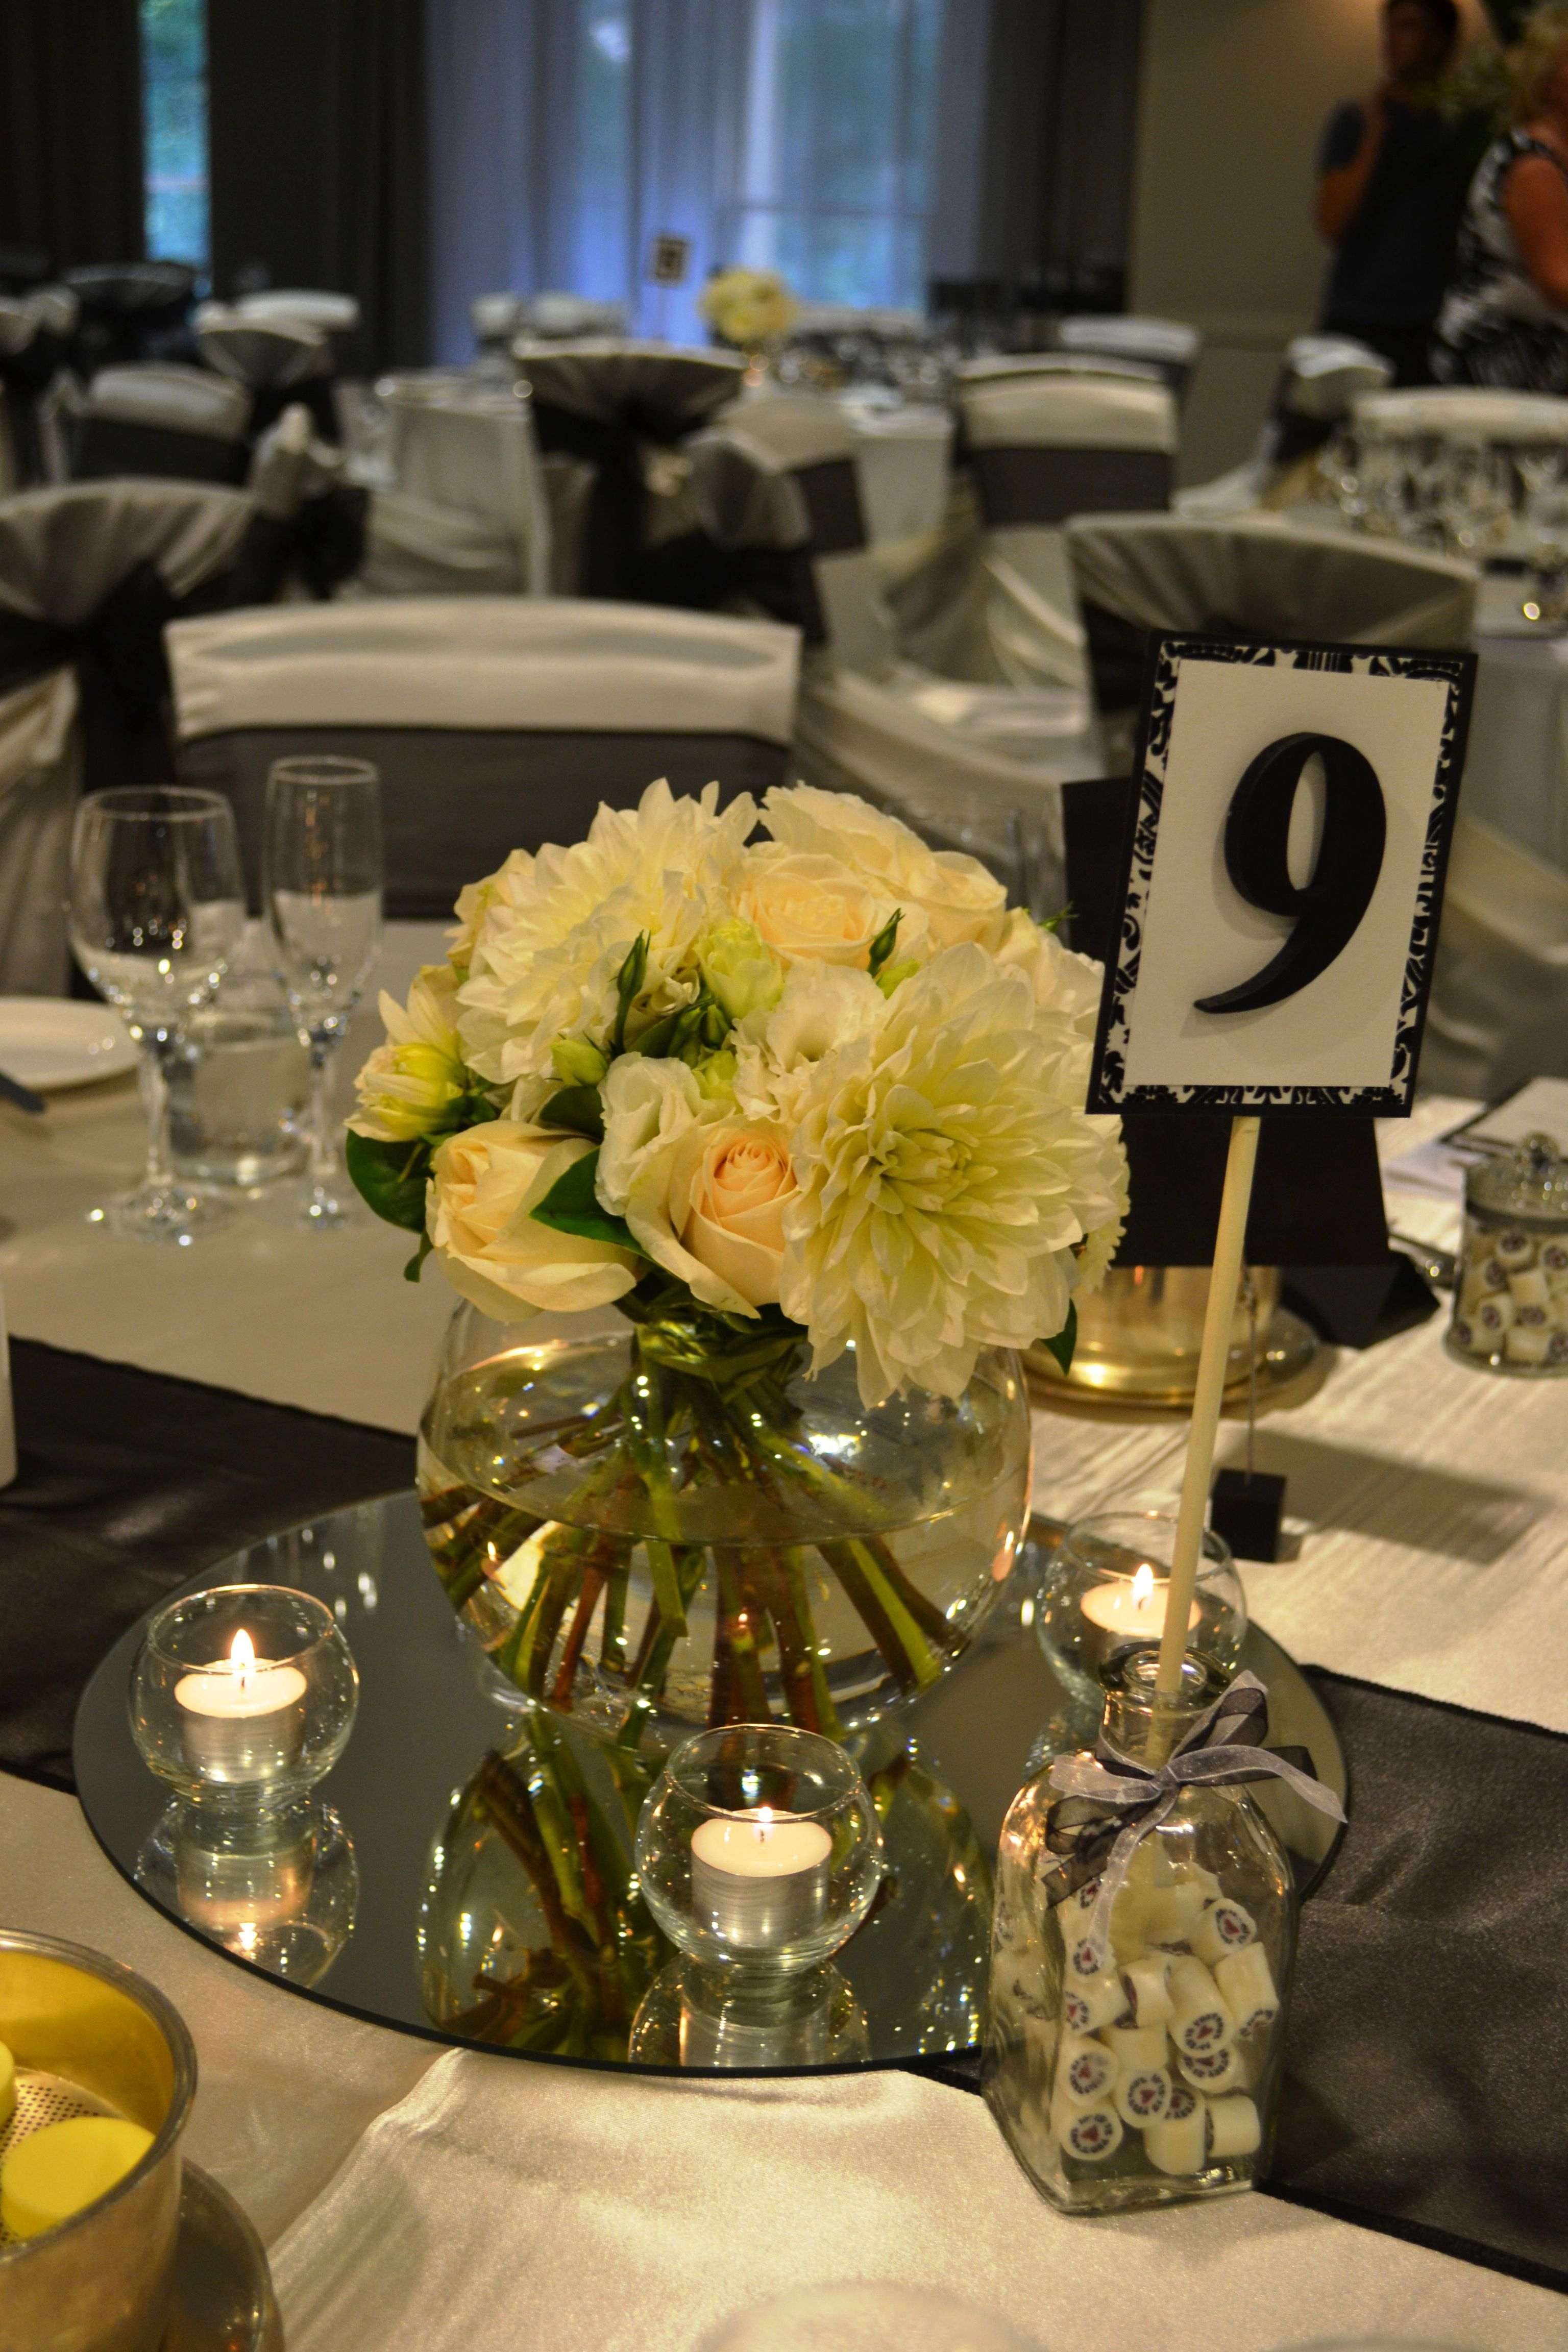 Black And White Wedding Reception Guest Table Floral Centrepiece